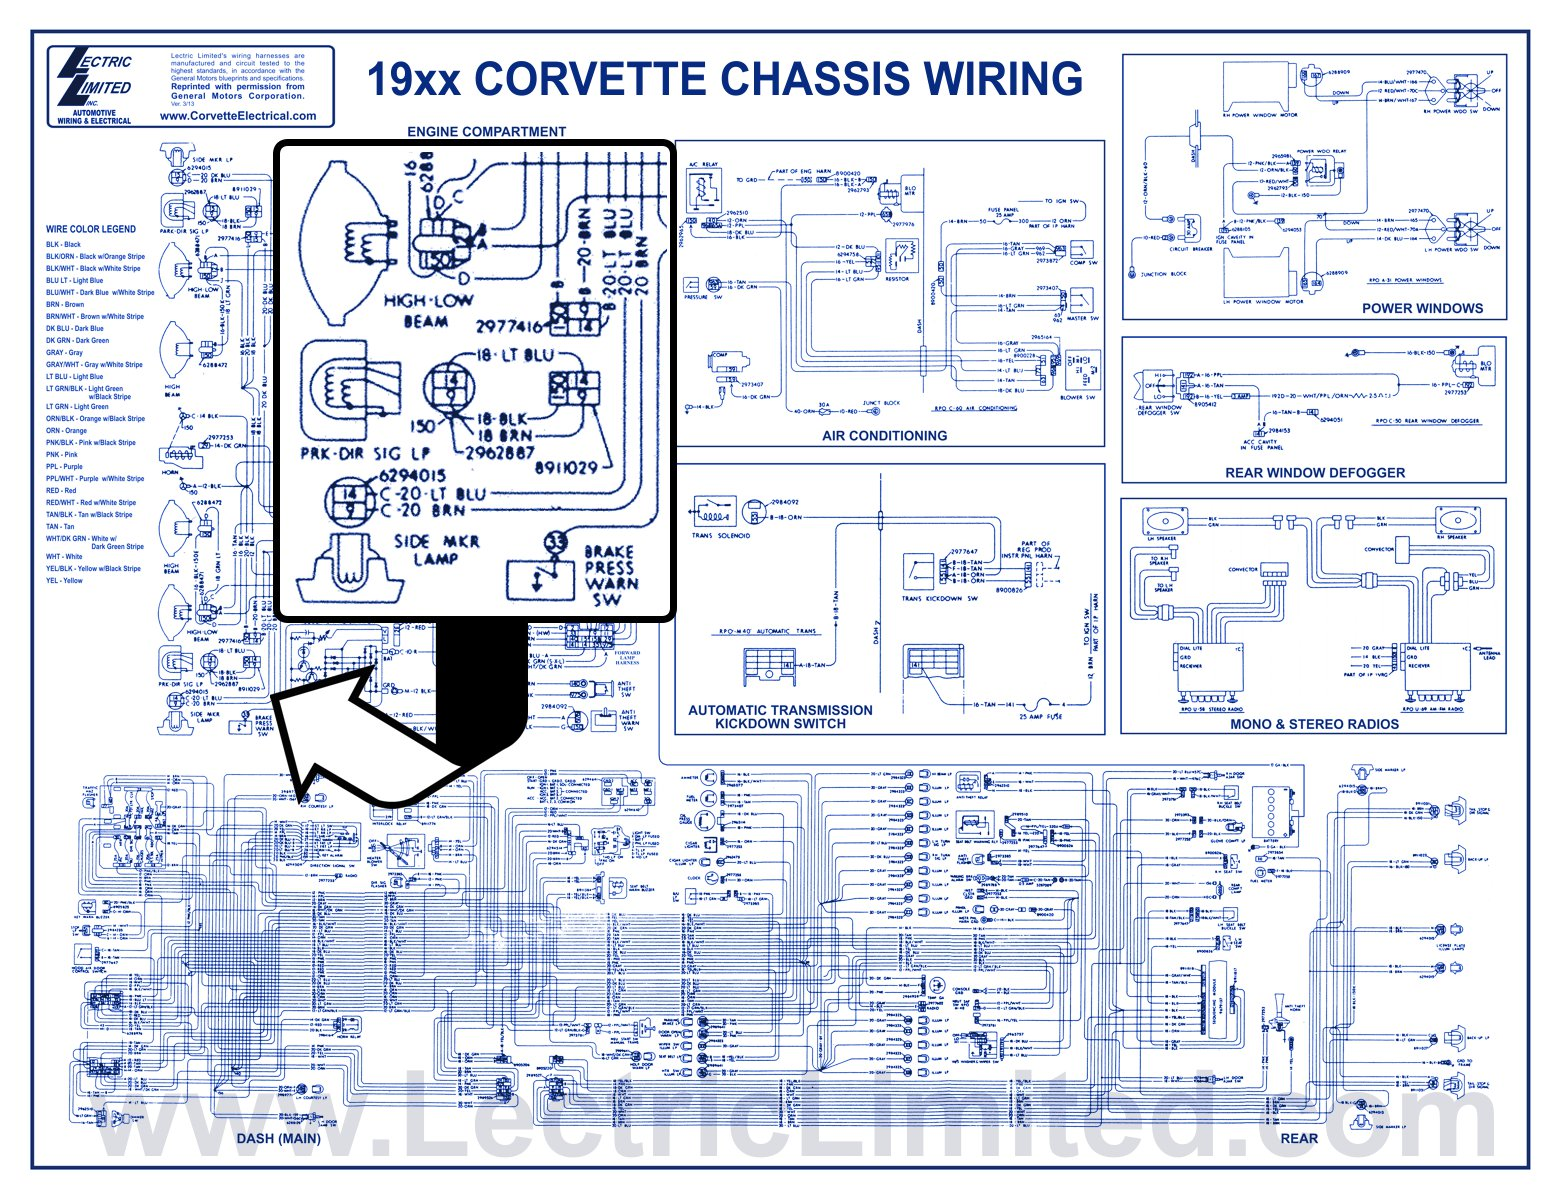 1976 corvette dash wiring diagram 6 way semi trailer plug 63 schematic fuse box library 1969 instrument panel trusted